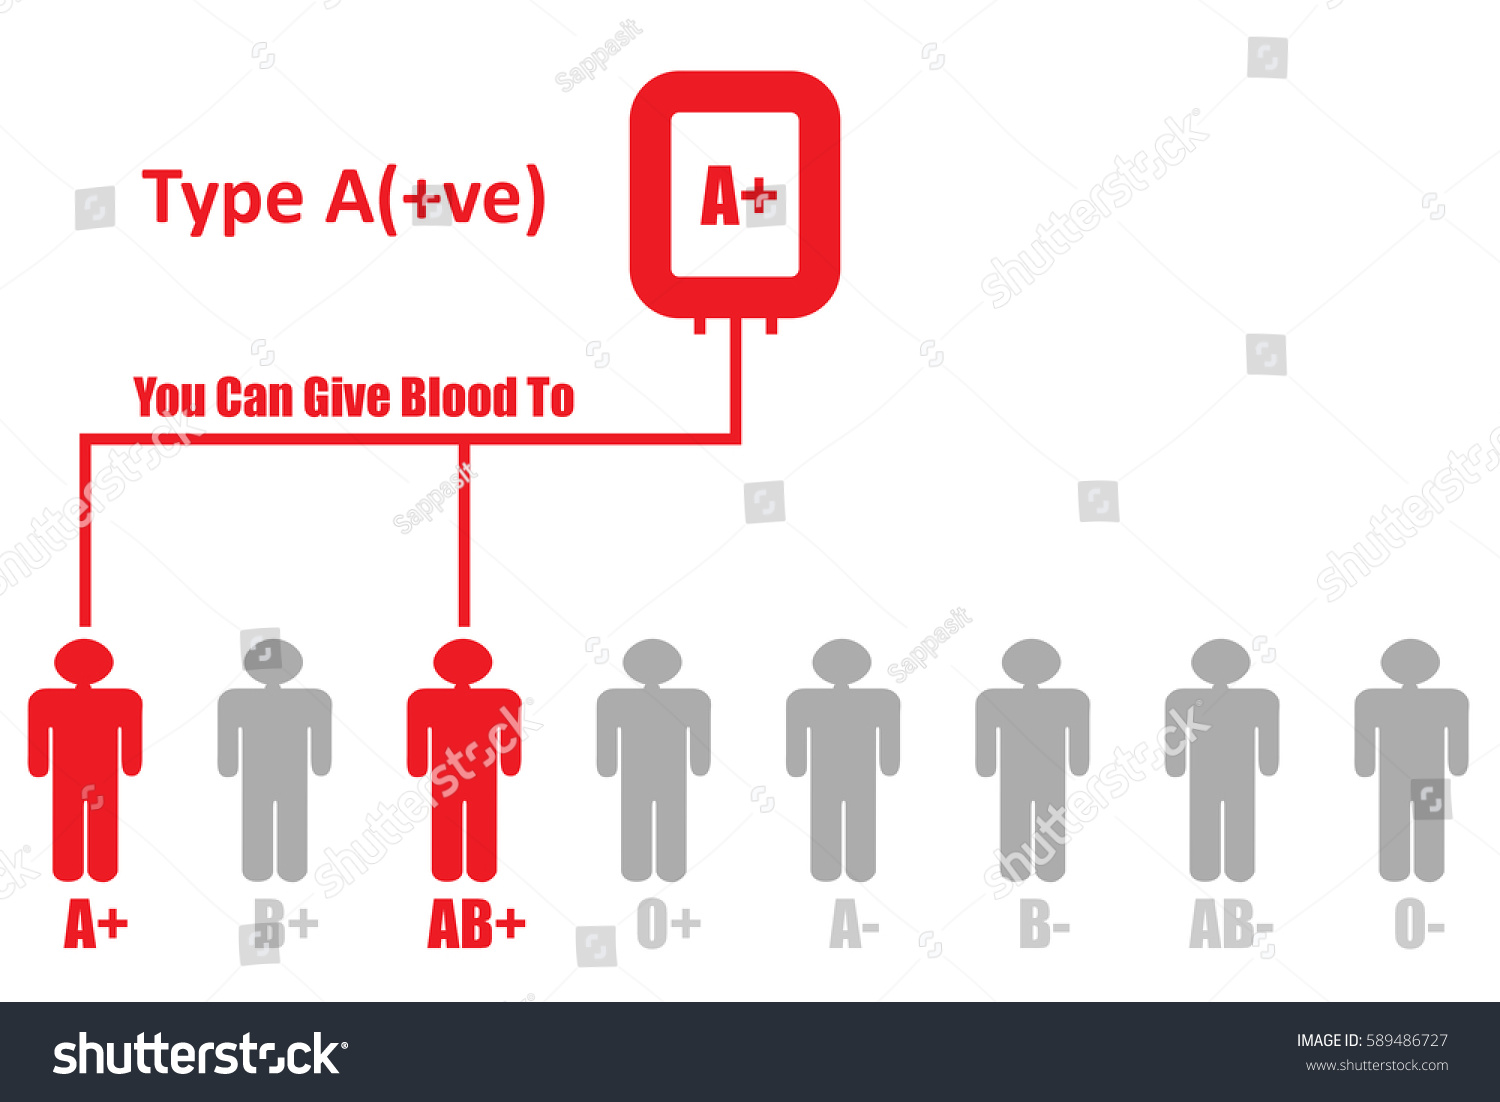 Blood donationblood group type positive can stock illustration blood donationblood group type a positive can give blood to pooptronica